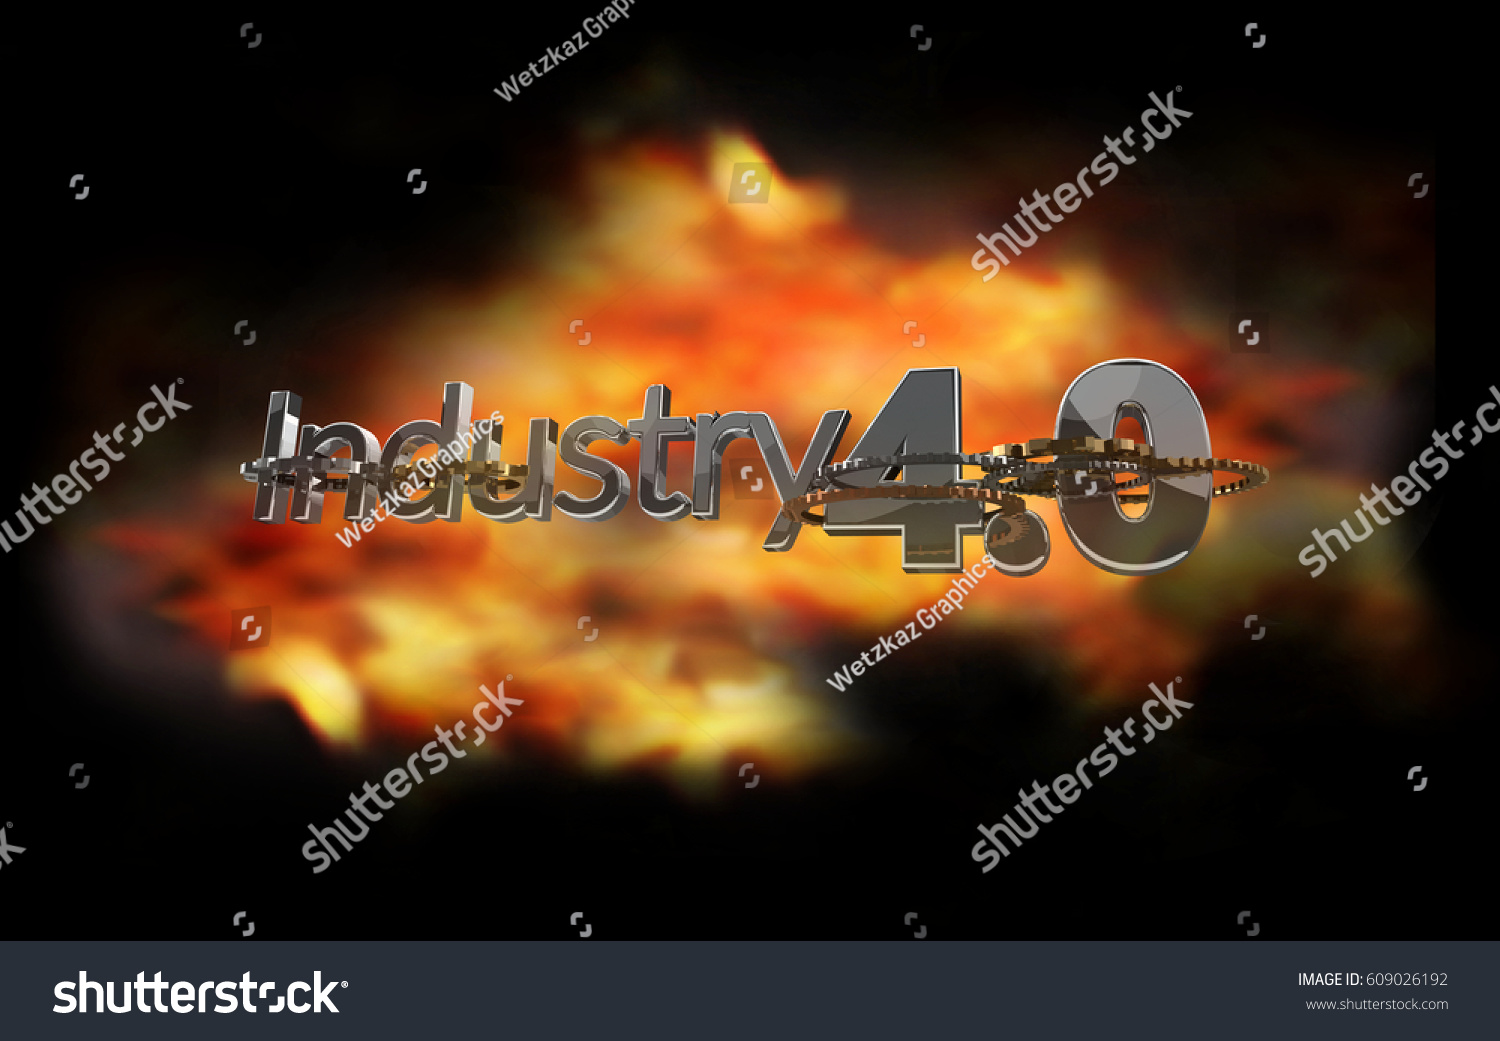 Industry 40 fire flames explosion 3d stock illustration 609026192 industry 40 fire flames explosion 3d rendering symbol buycottarizona